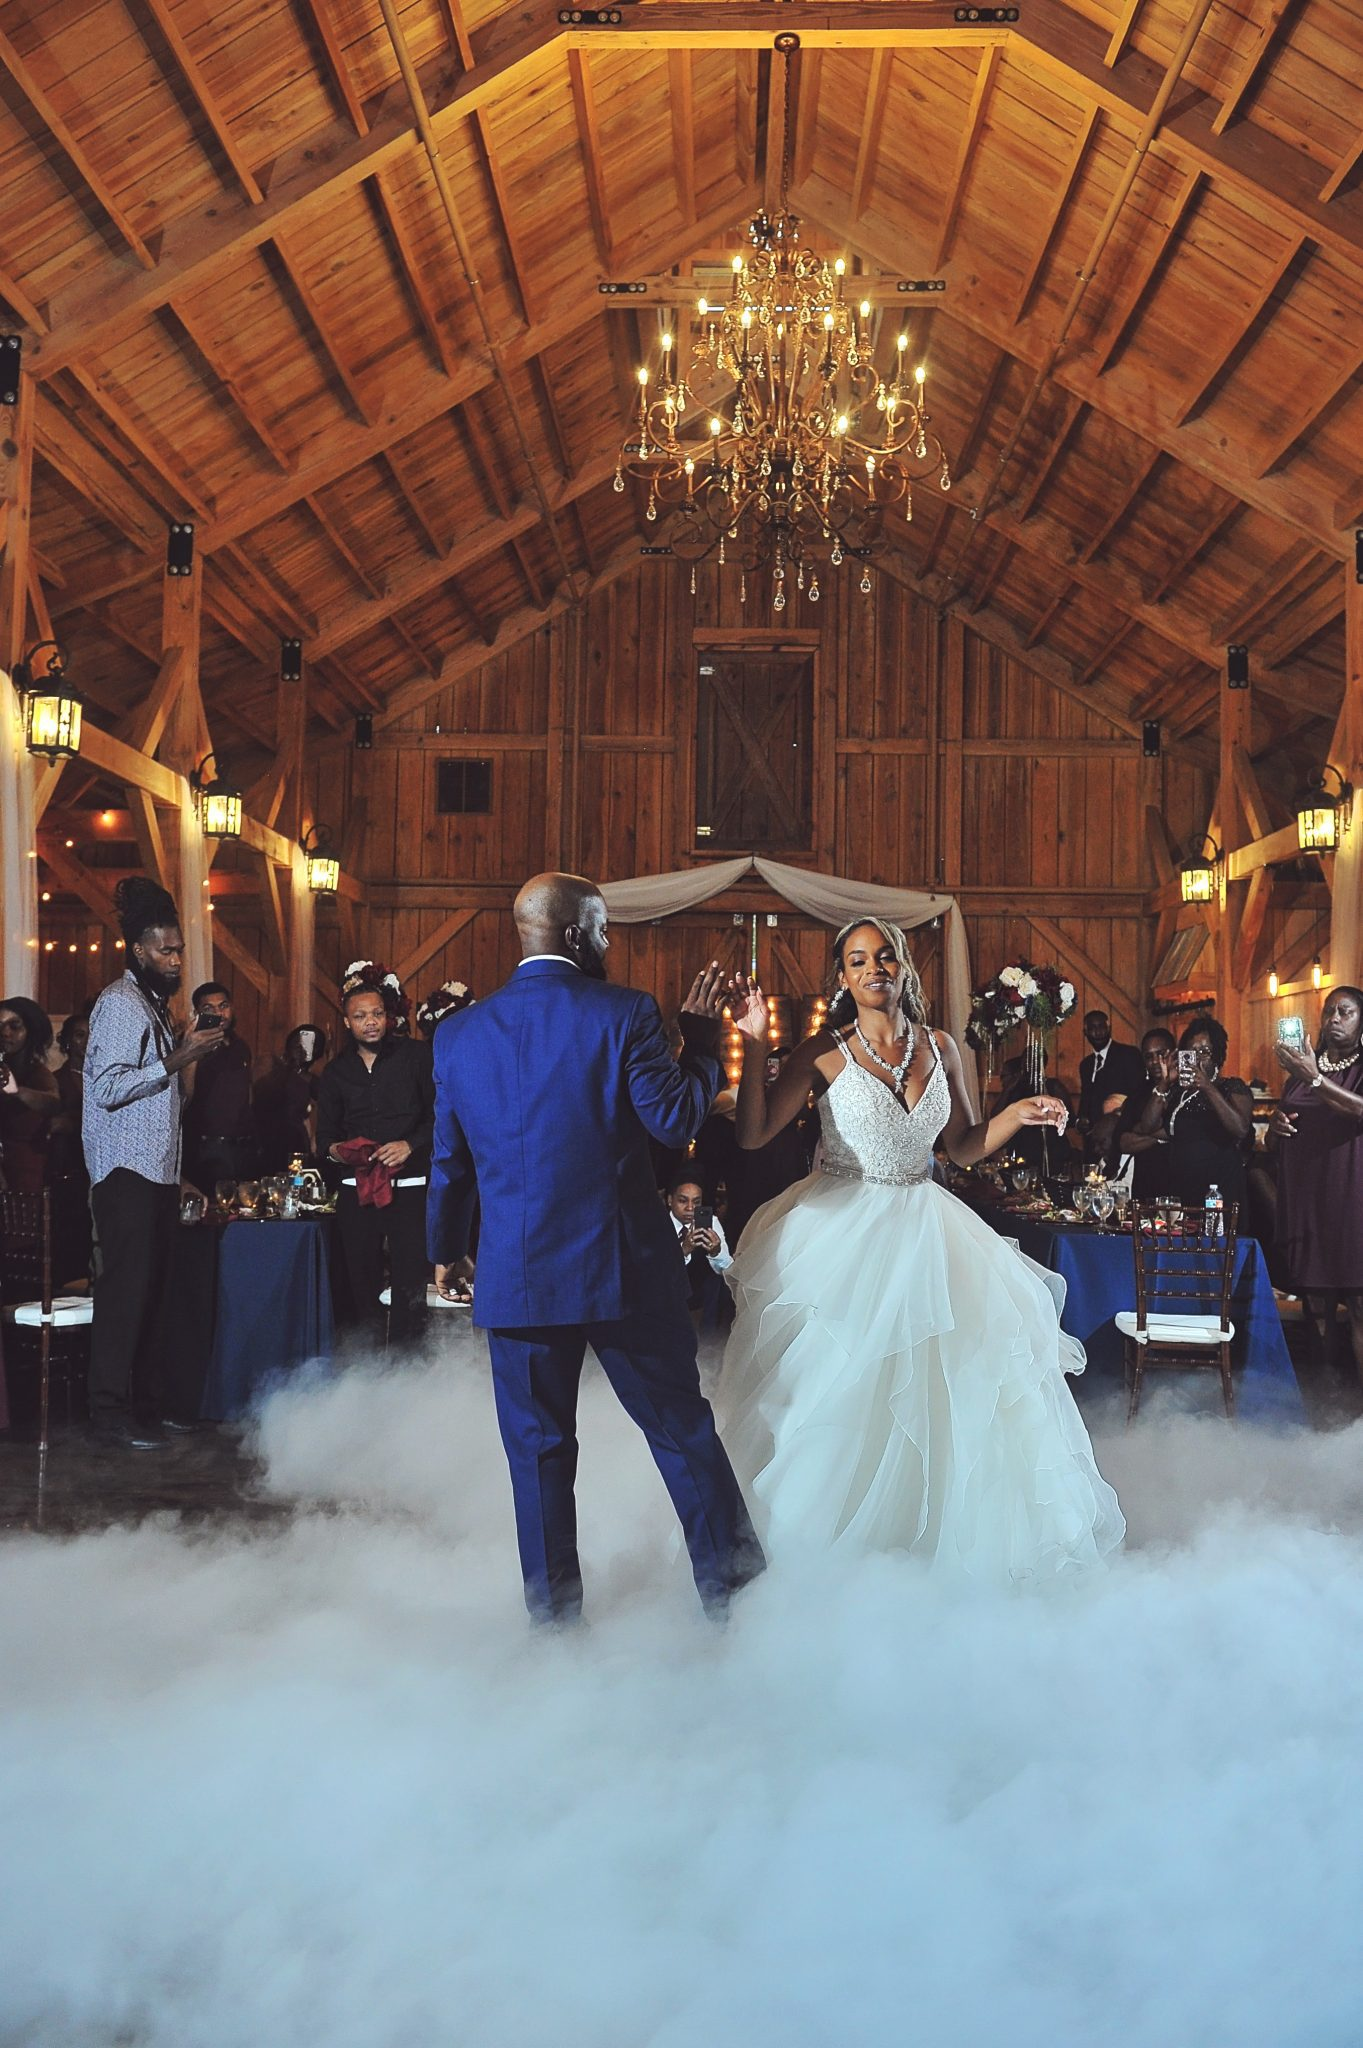 dance on a cloud fog machine